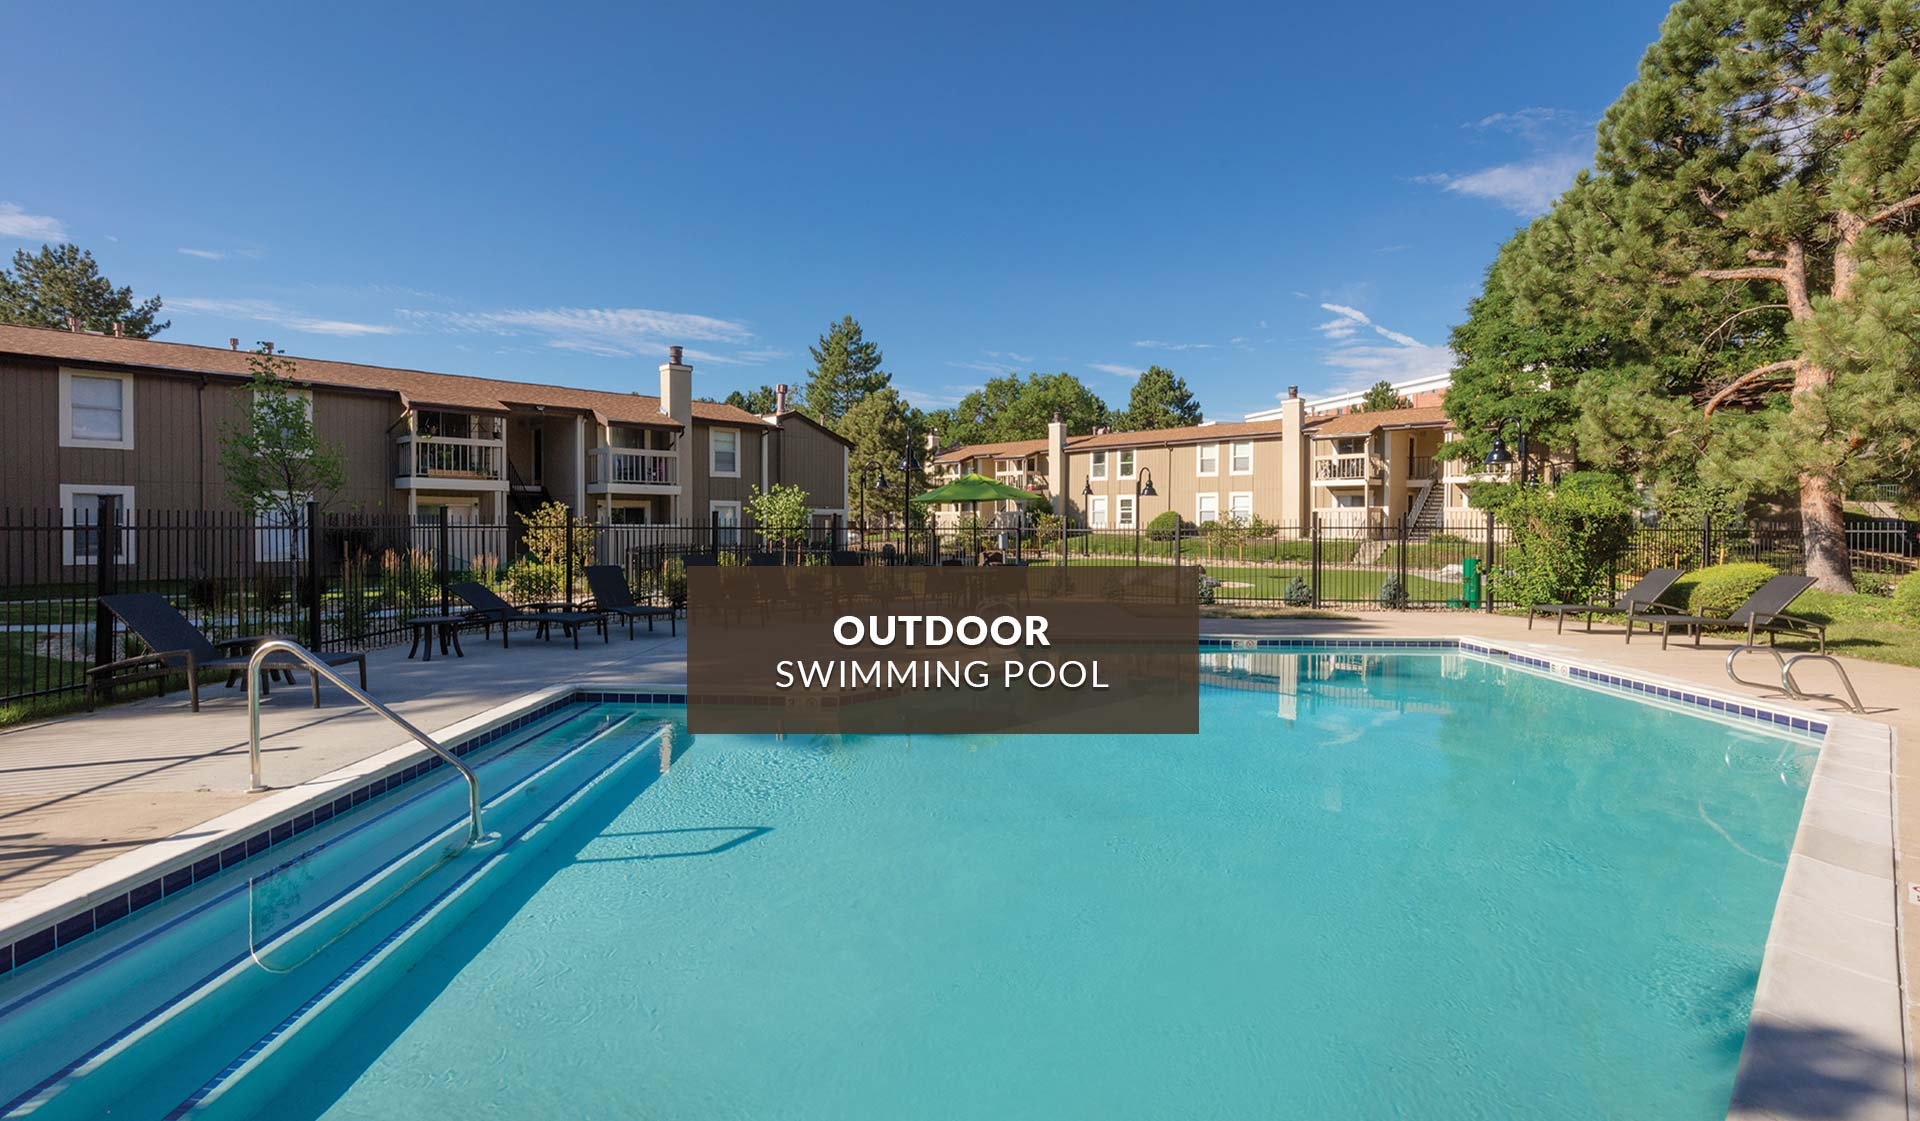 Creekside Apartments - outdoor swimming pool with apartment buildings in background - denver, CO